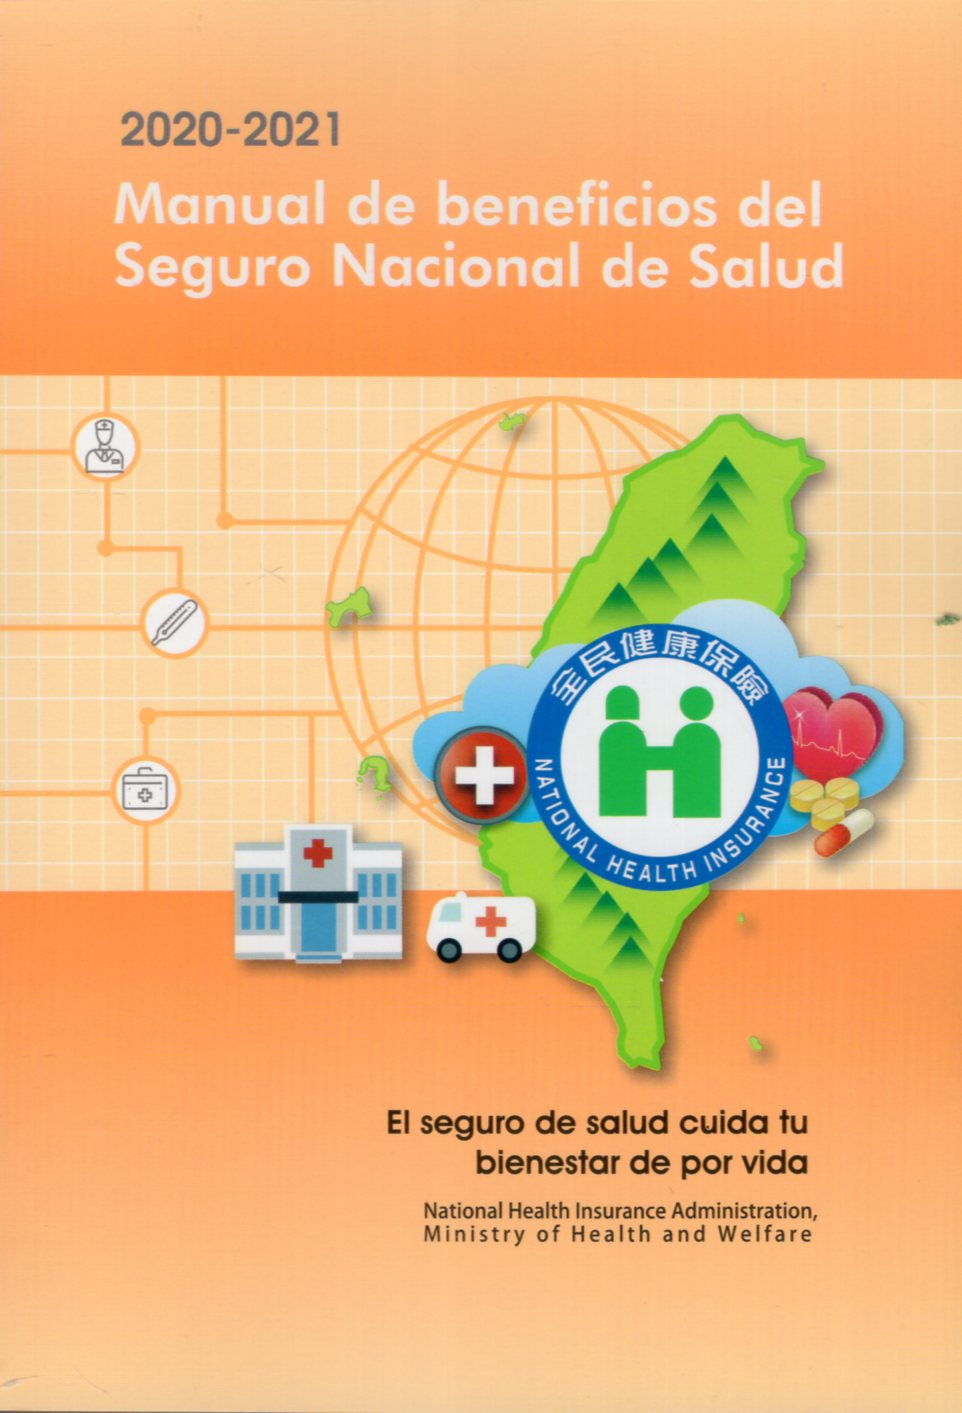 2019-2020 Manual de beneficios del Seguro Nacional de Salud